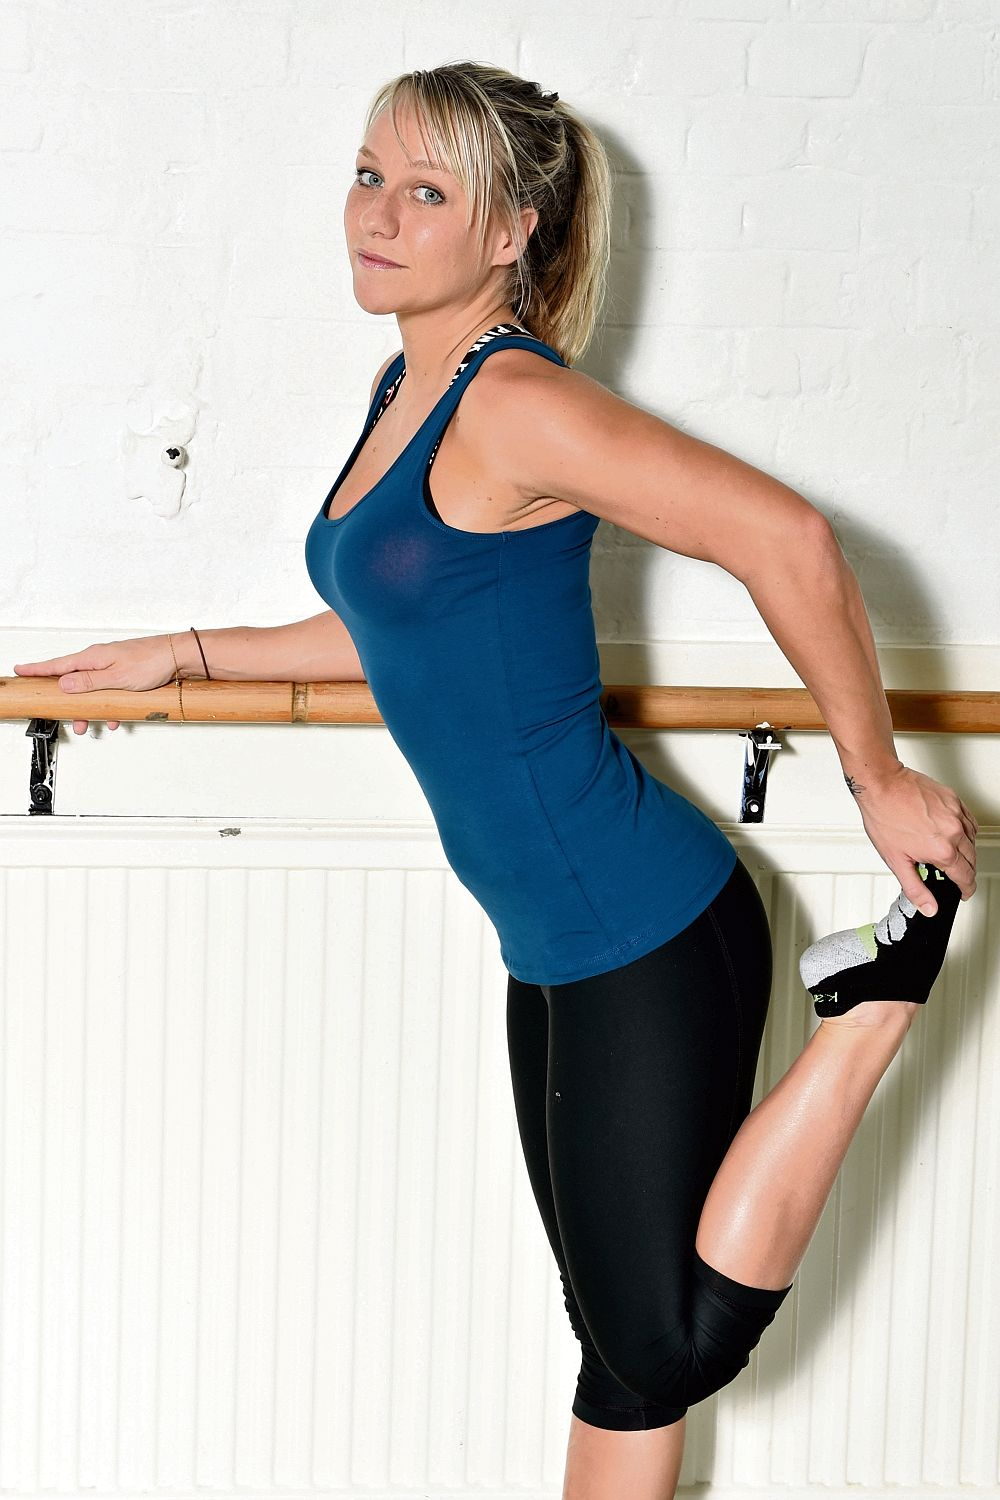 Chloe Madeley in tight workout